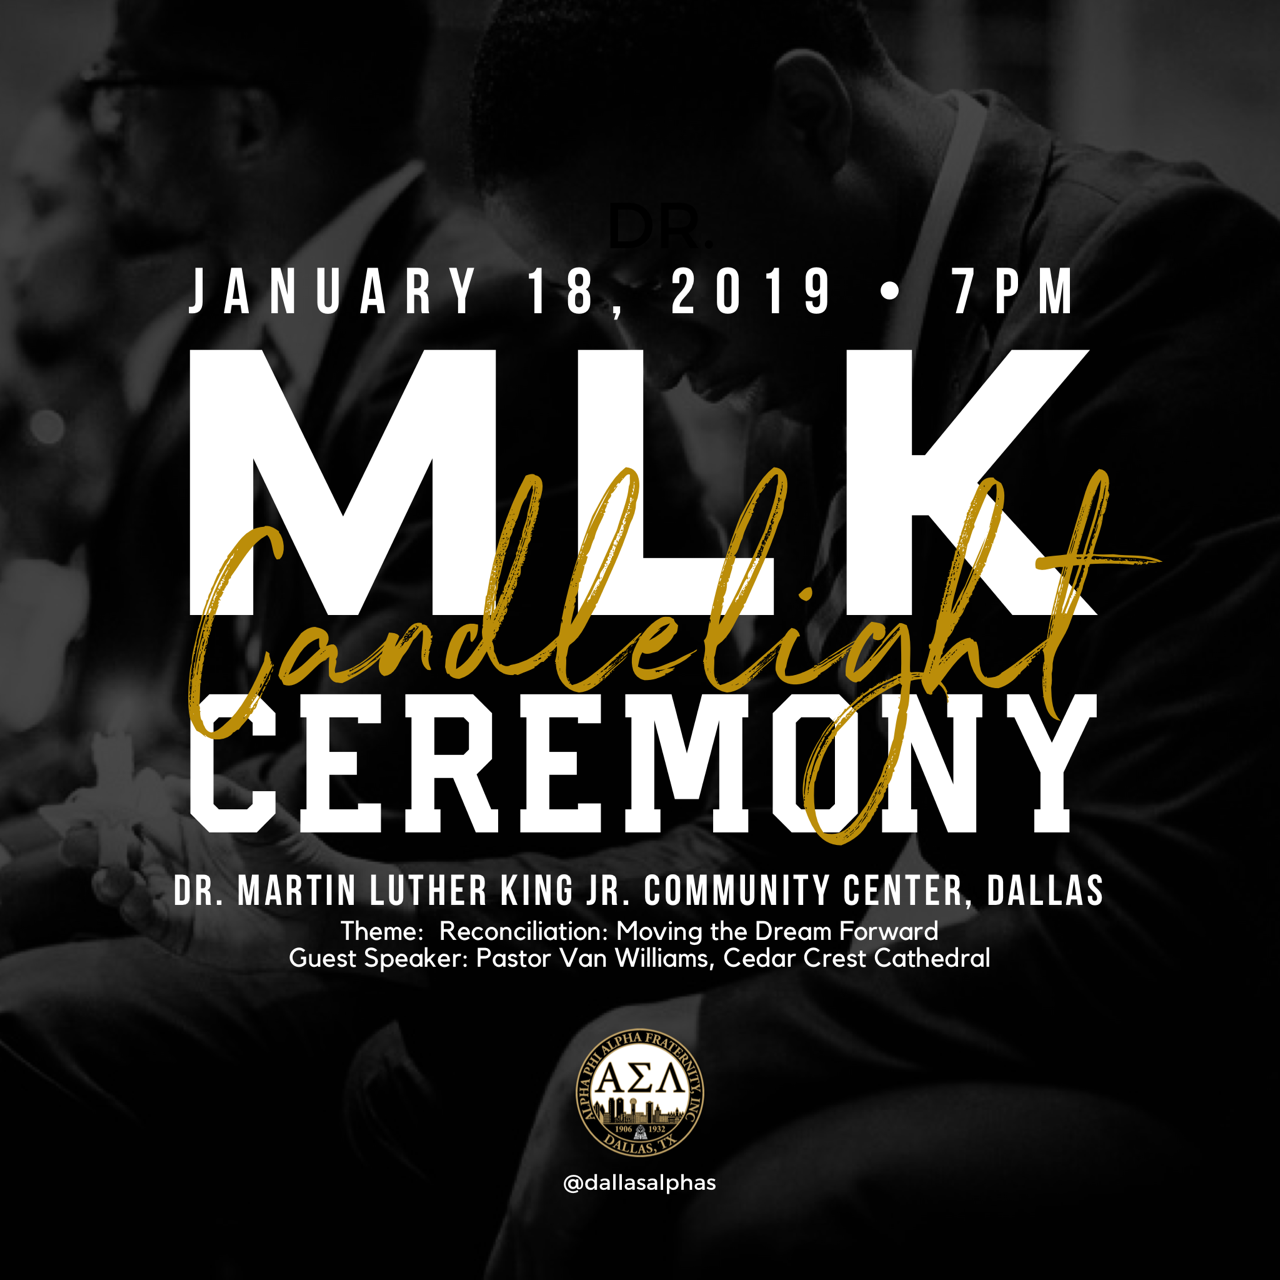 MLK Candlelight Ceremony @ MLK, Jr. Recreation Center